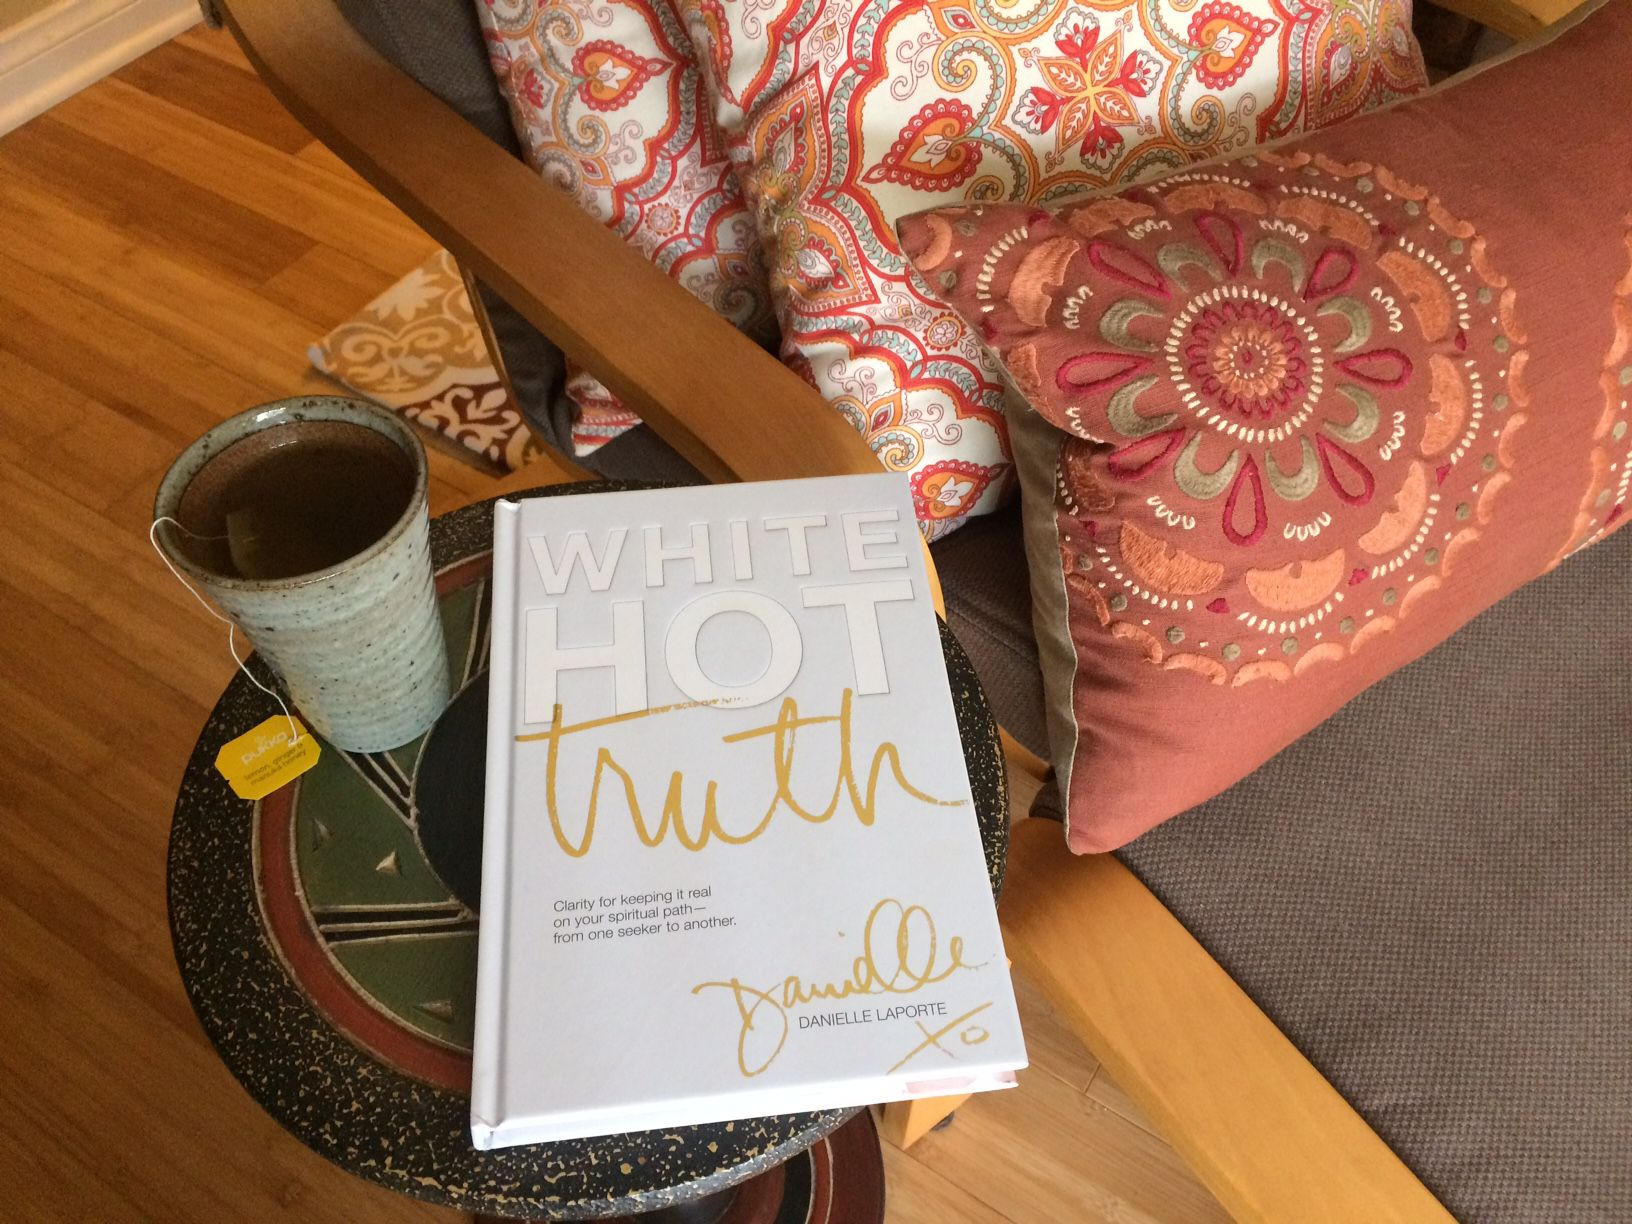 White Hot Truth - Winter Series - Conversation Connection Curiosity